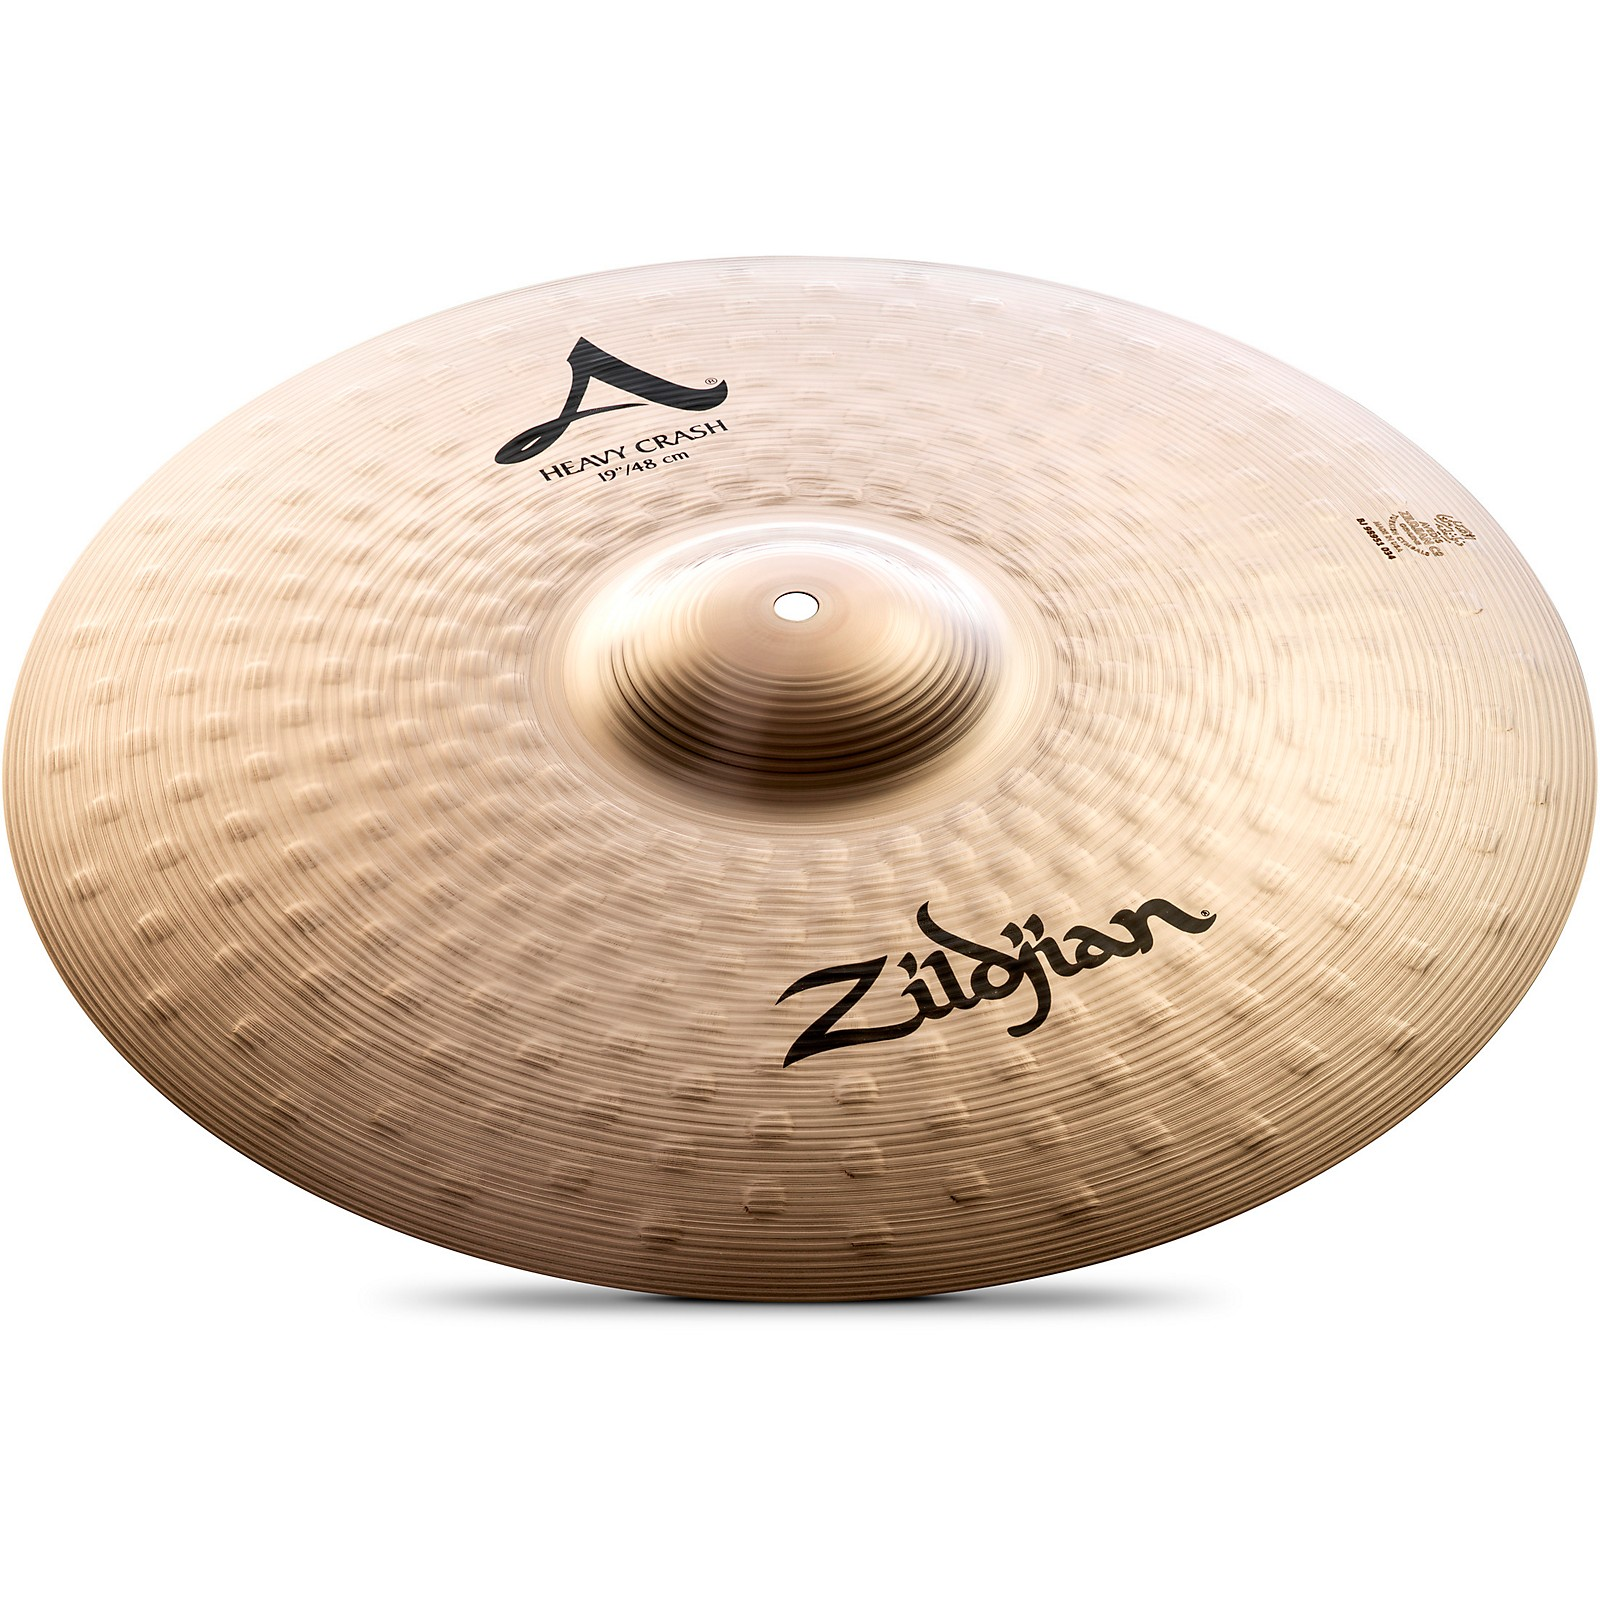 Zildjian A Series Heavy Crash Cymbal Brilliant